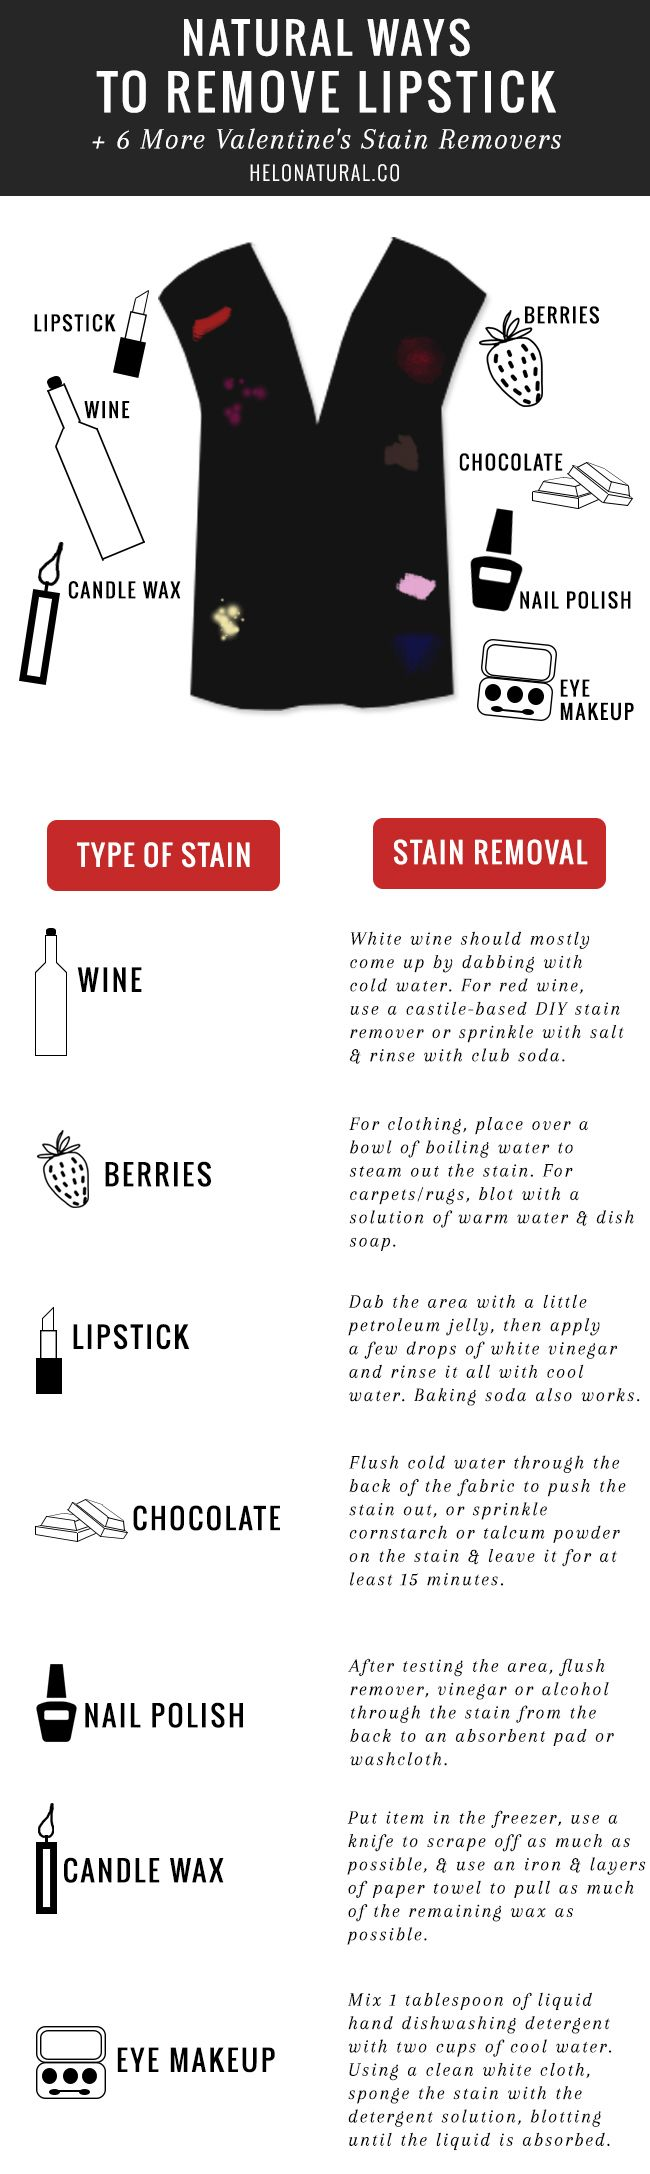 Natural Ways to Remove Lipstick + 6 More Valentine's Day Stain Removers | HelloNatural.co